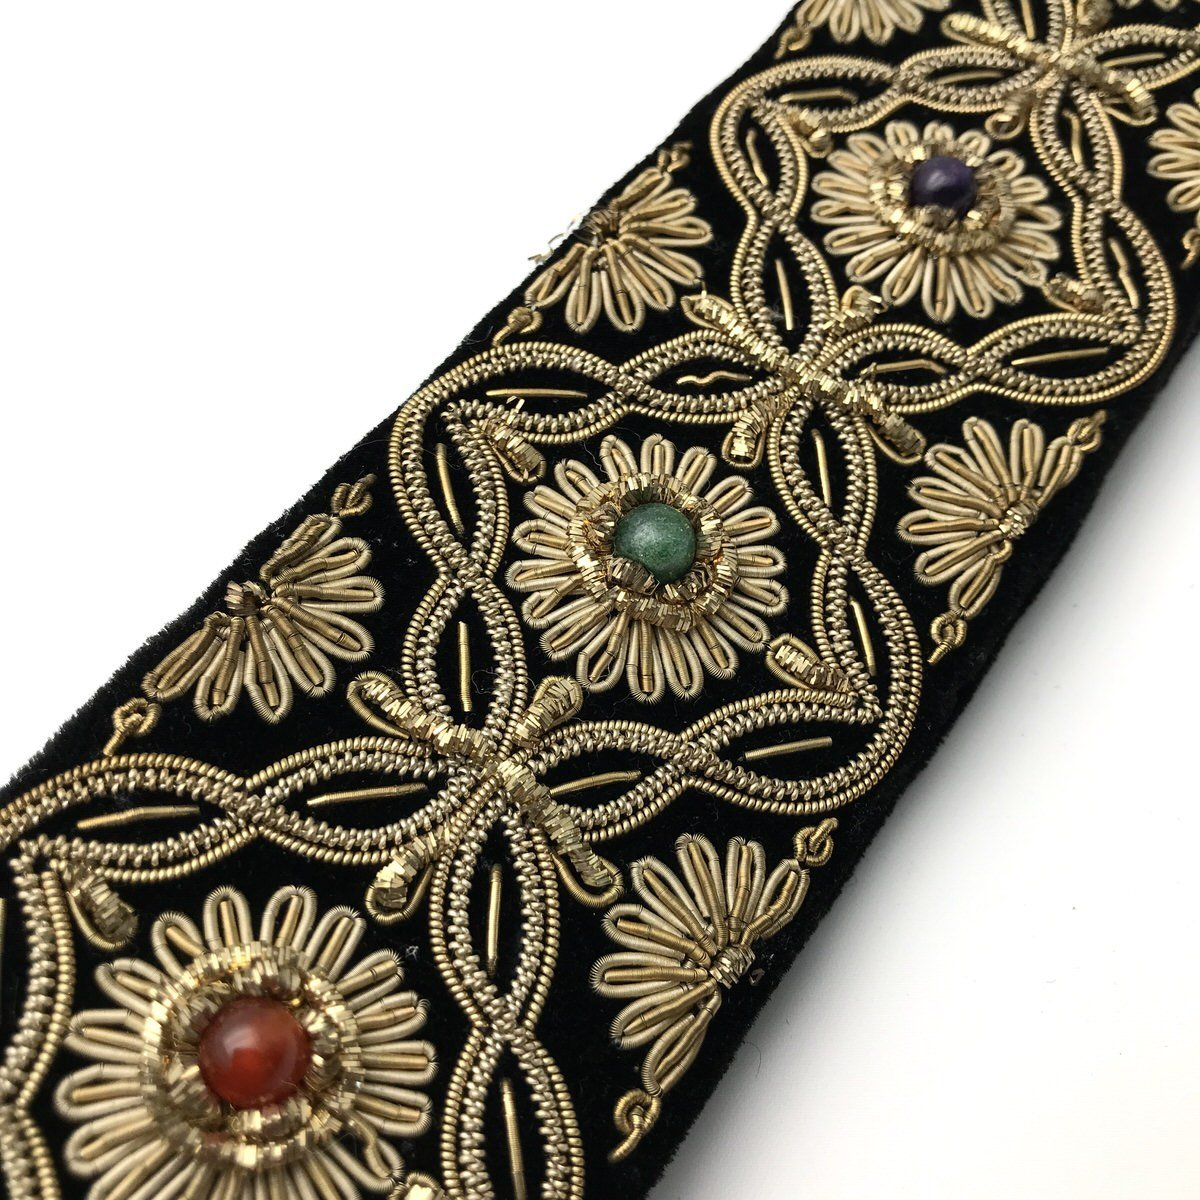 Art Deco Inspired Handmade Embroidered Belt With Gemstones Vintage 1930s To 1980s